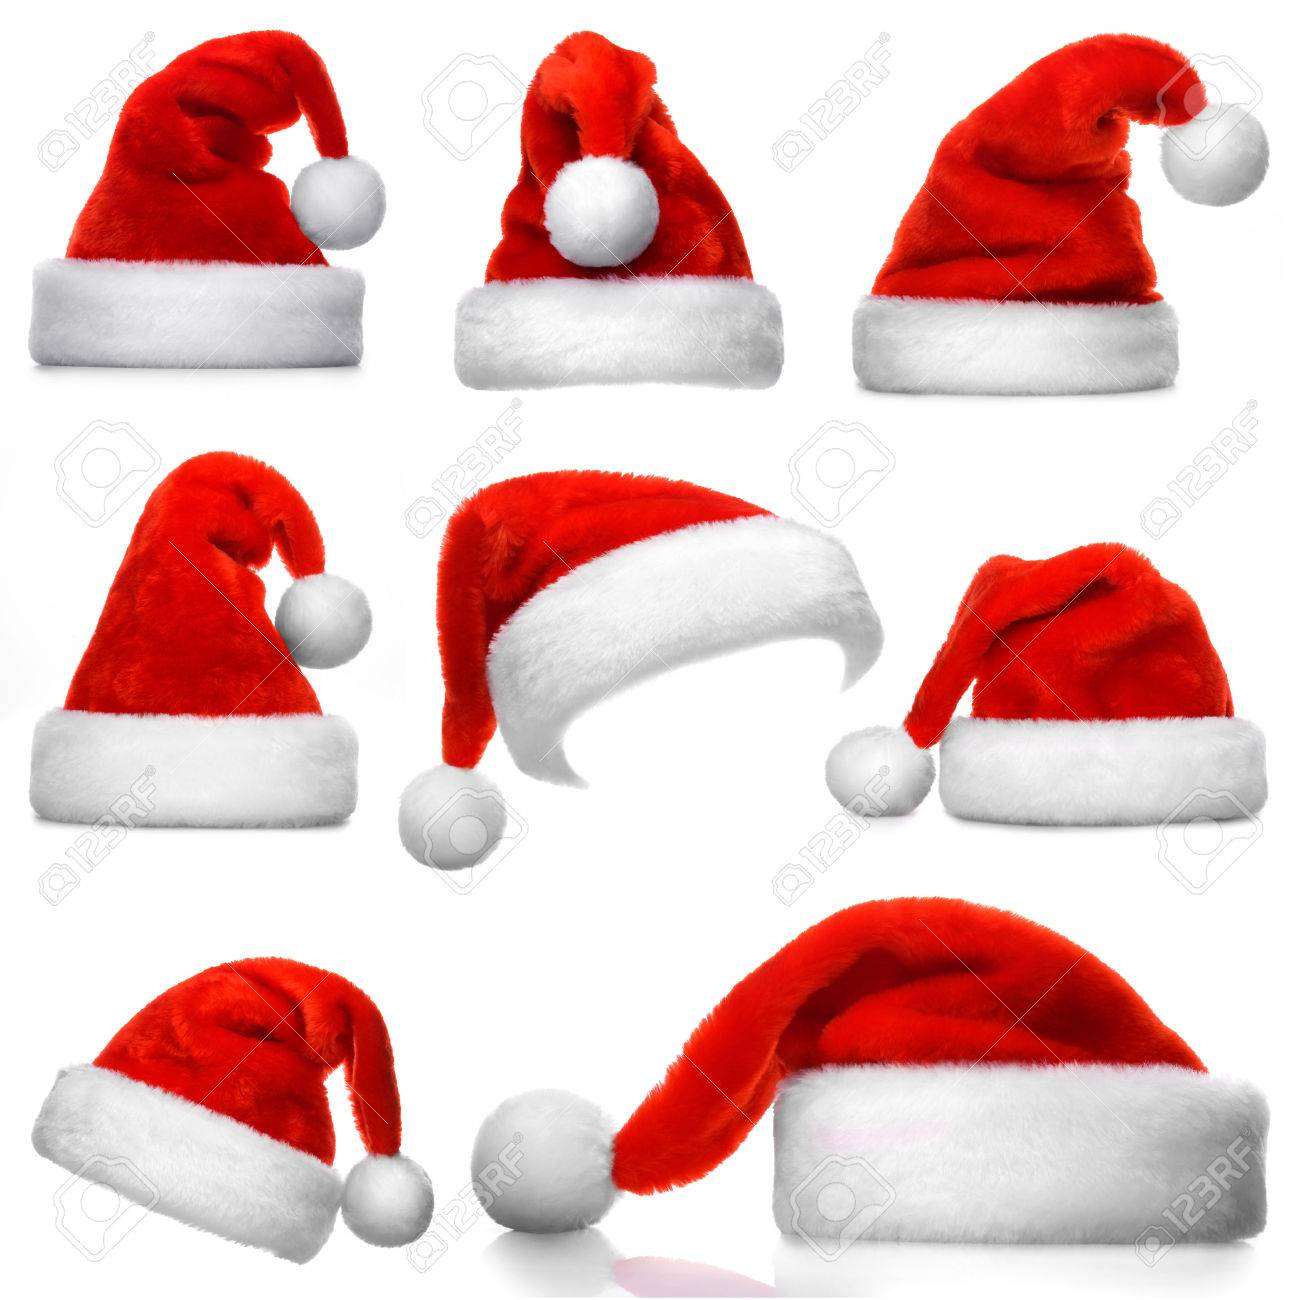 Set of red Santa Claus hats isolated on white background Stock Photo -  48931747 cd8d481aad4d